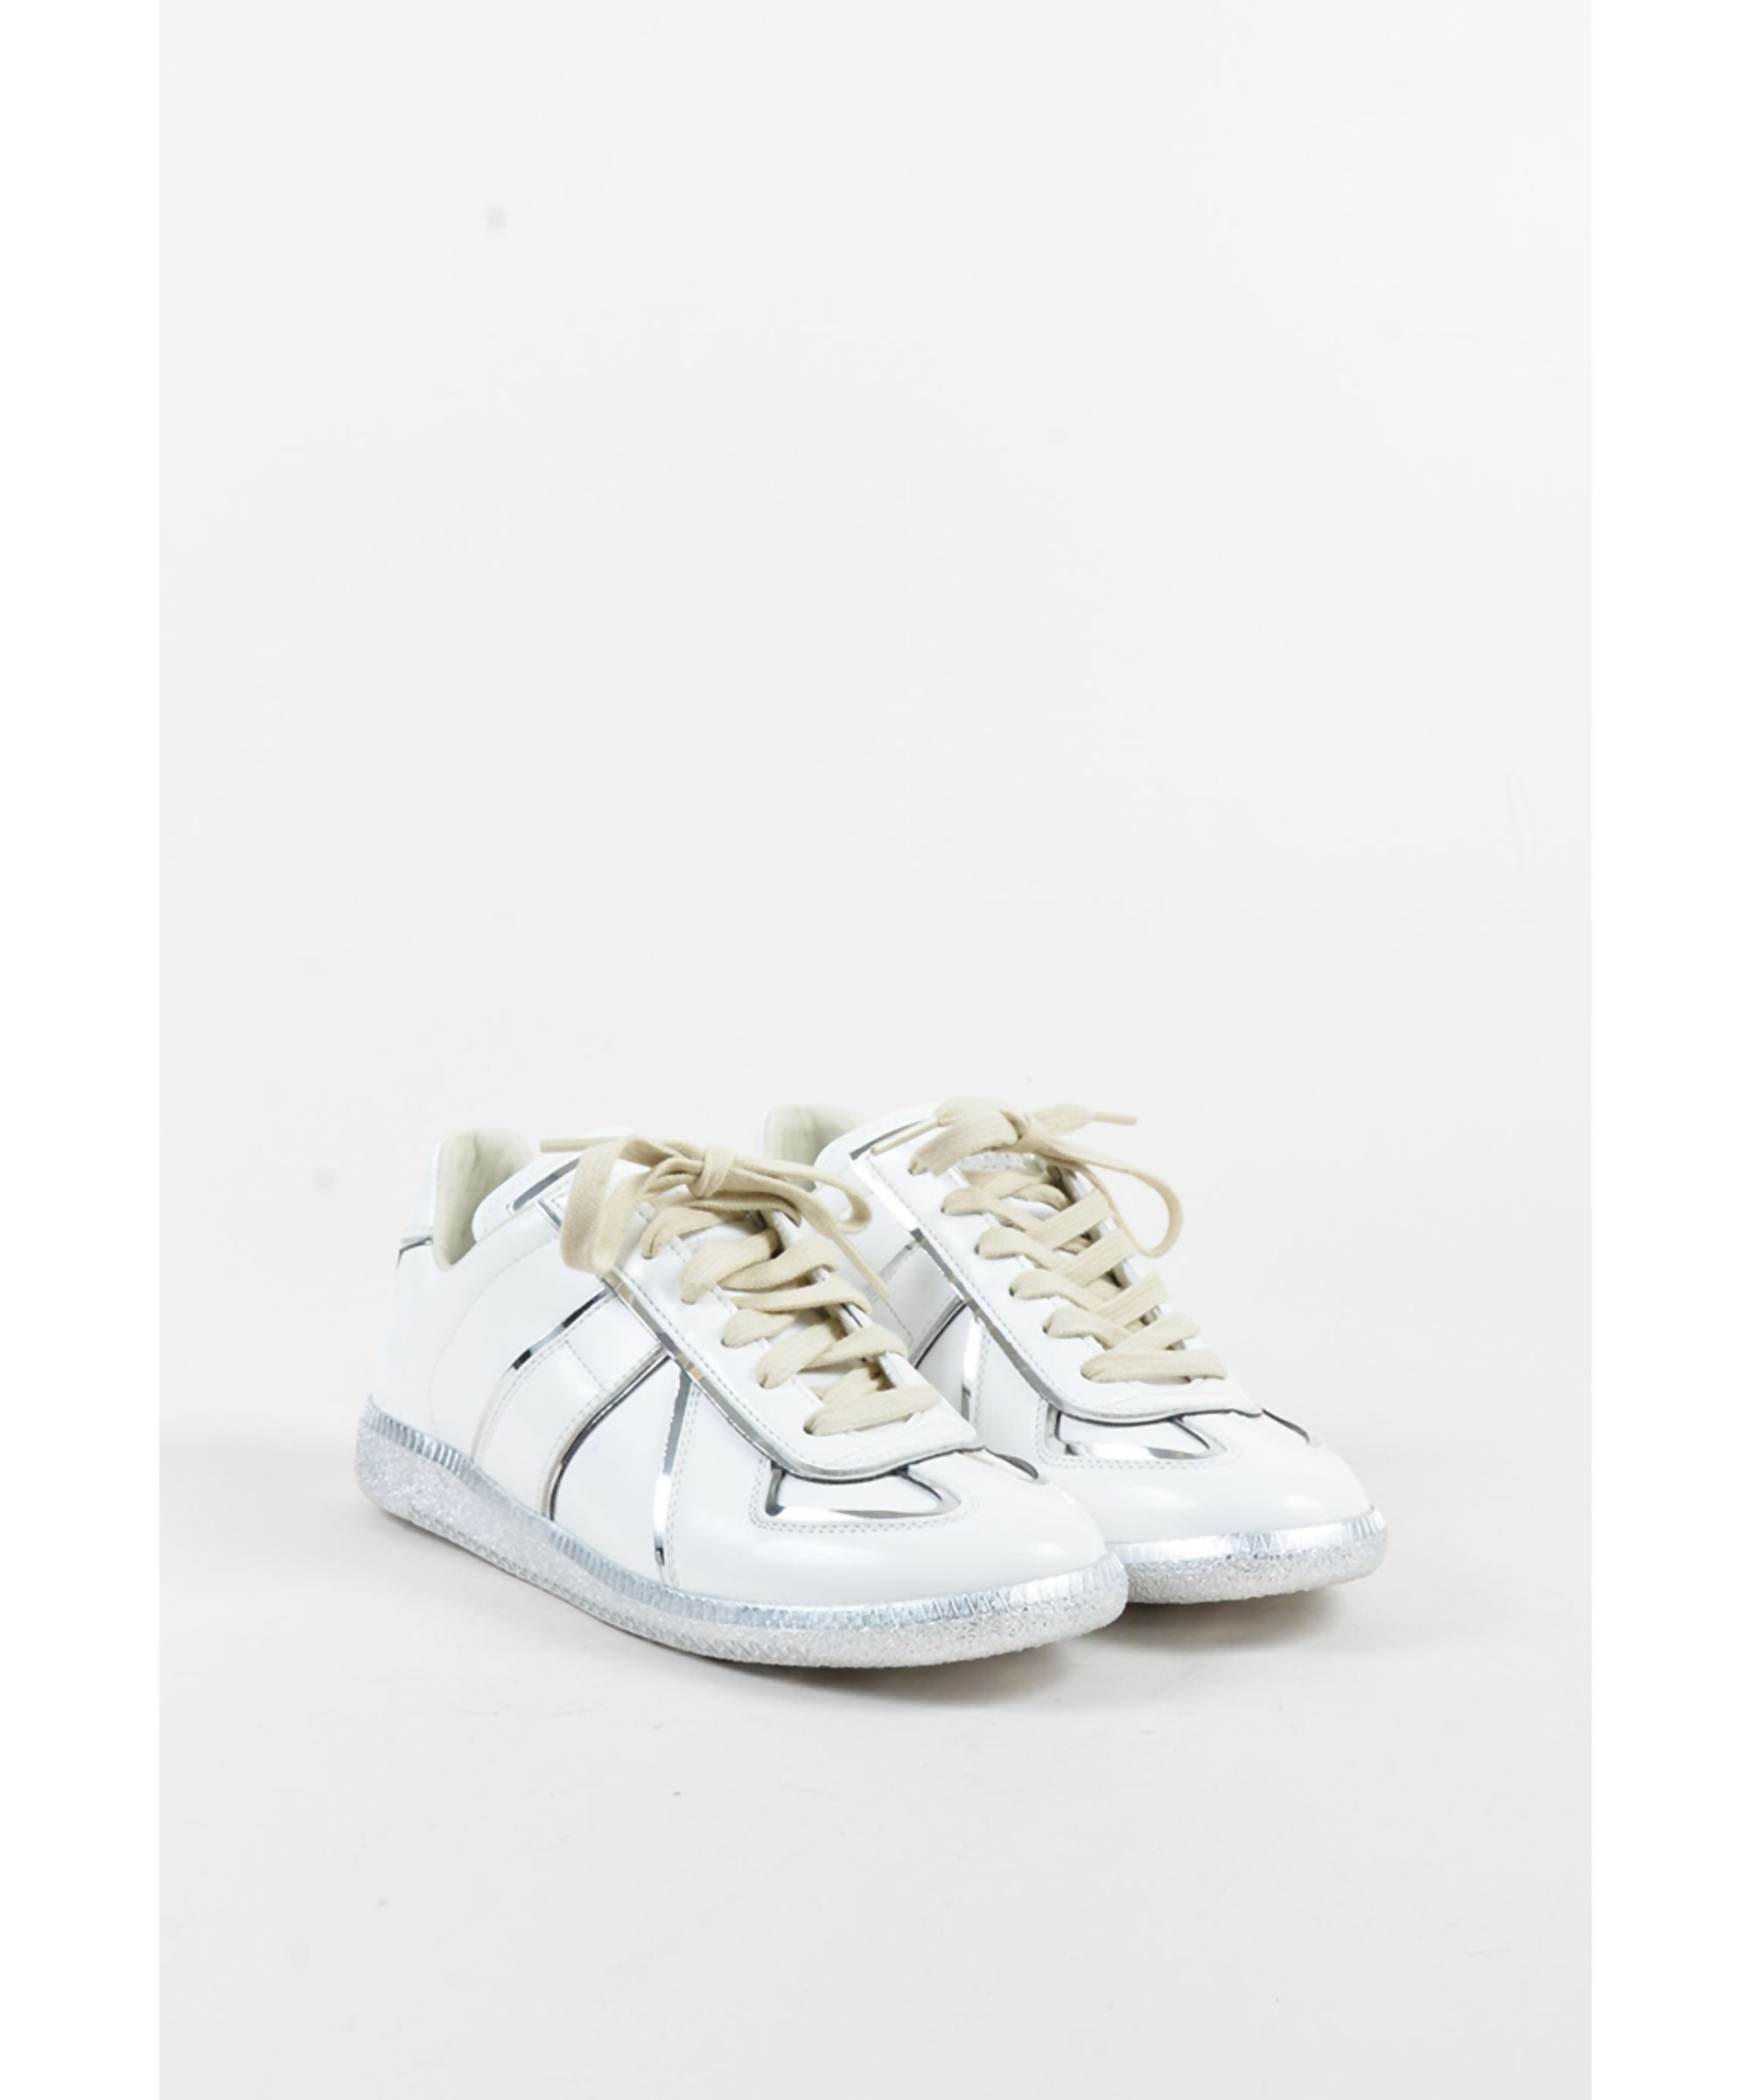 MAISON MARGIELA | White & Metallic Silver Leather Lace Up Sneakers #Shoes  #Sneakers #